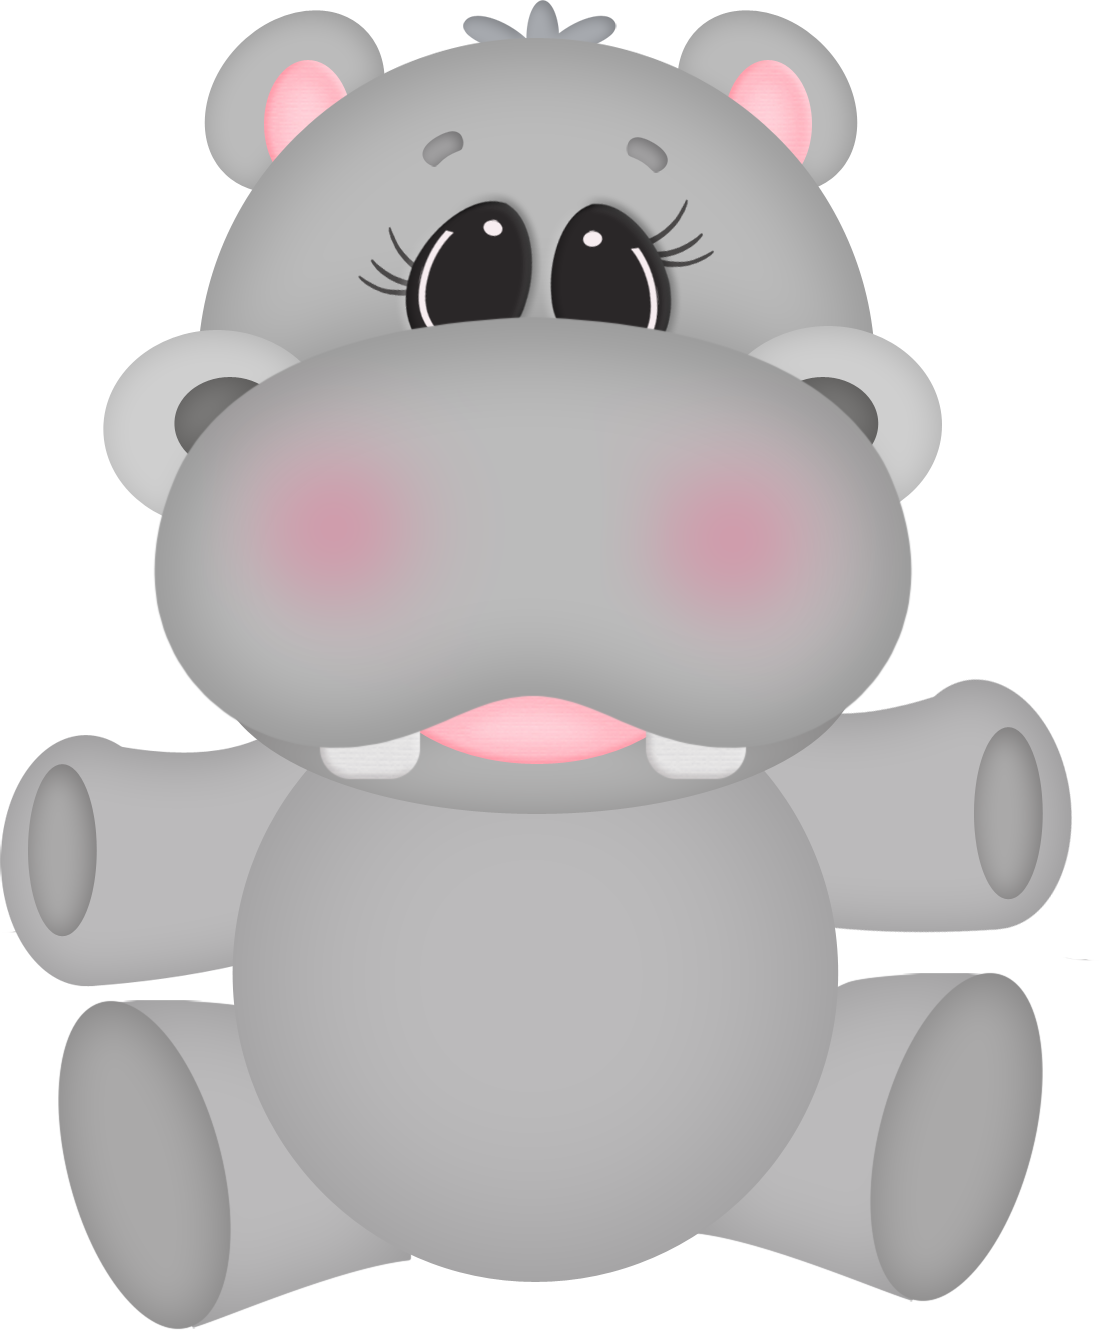 Hippo clipart drawn. Nose explore pictures art